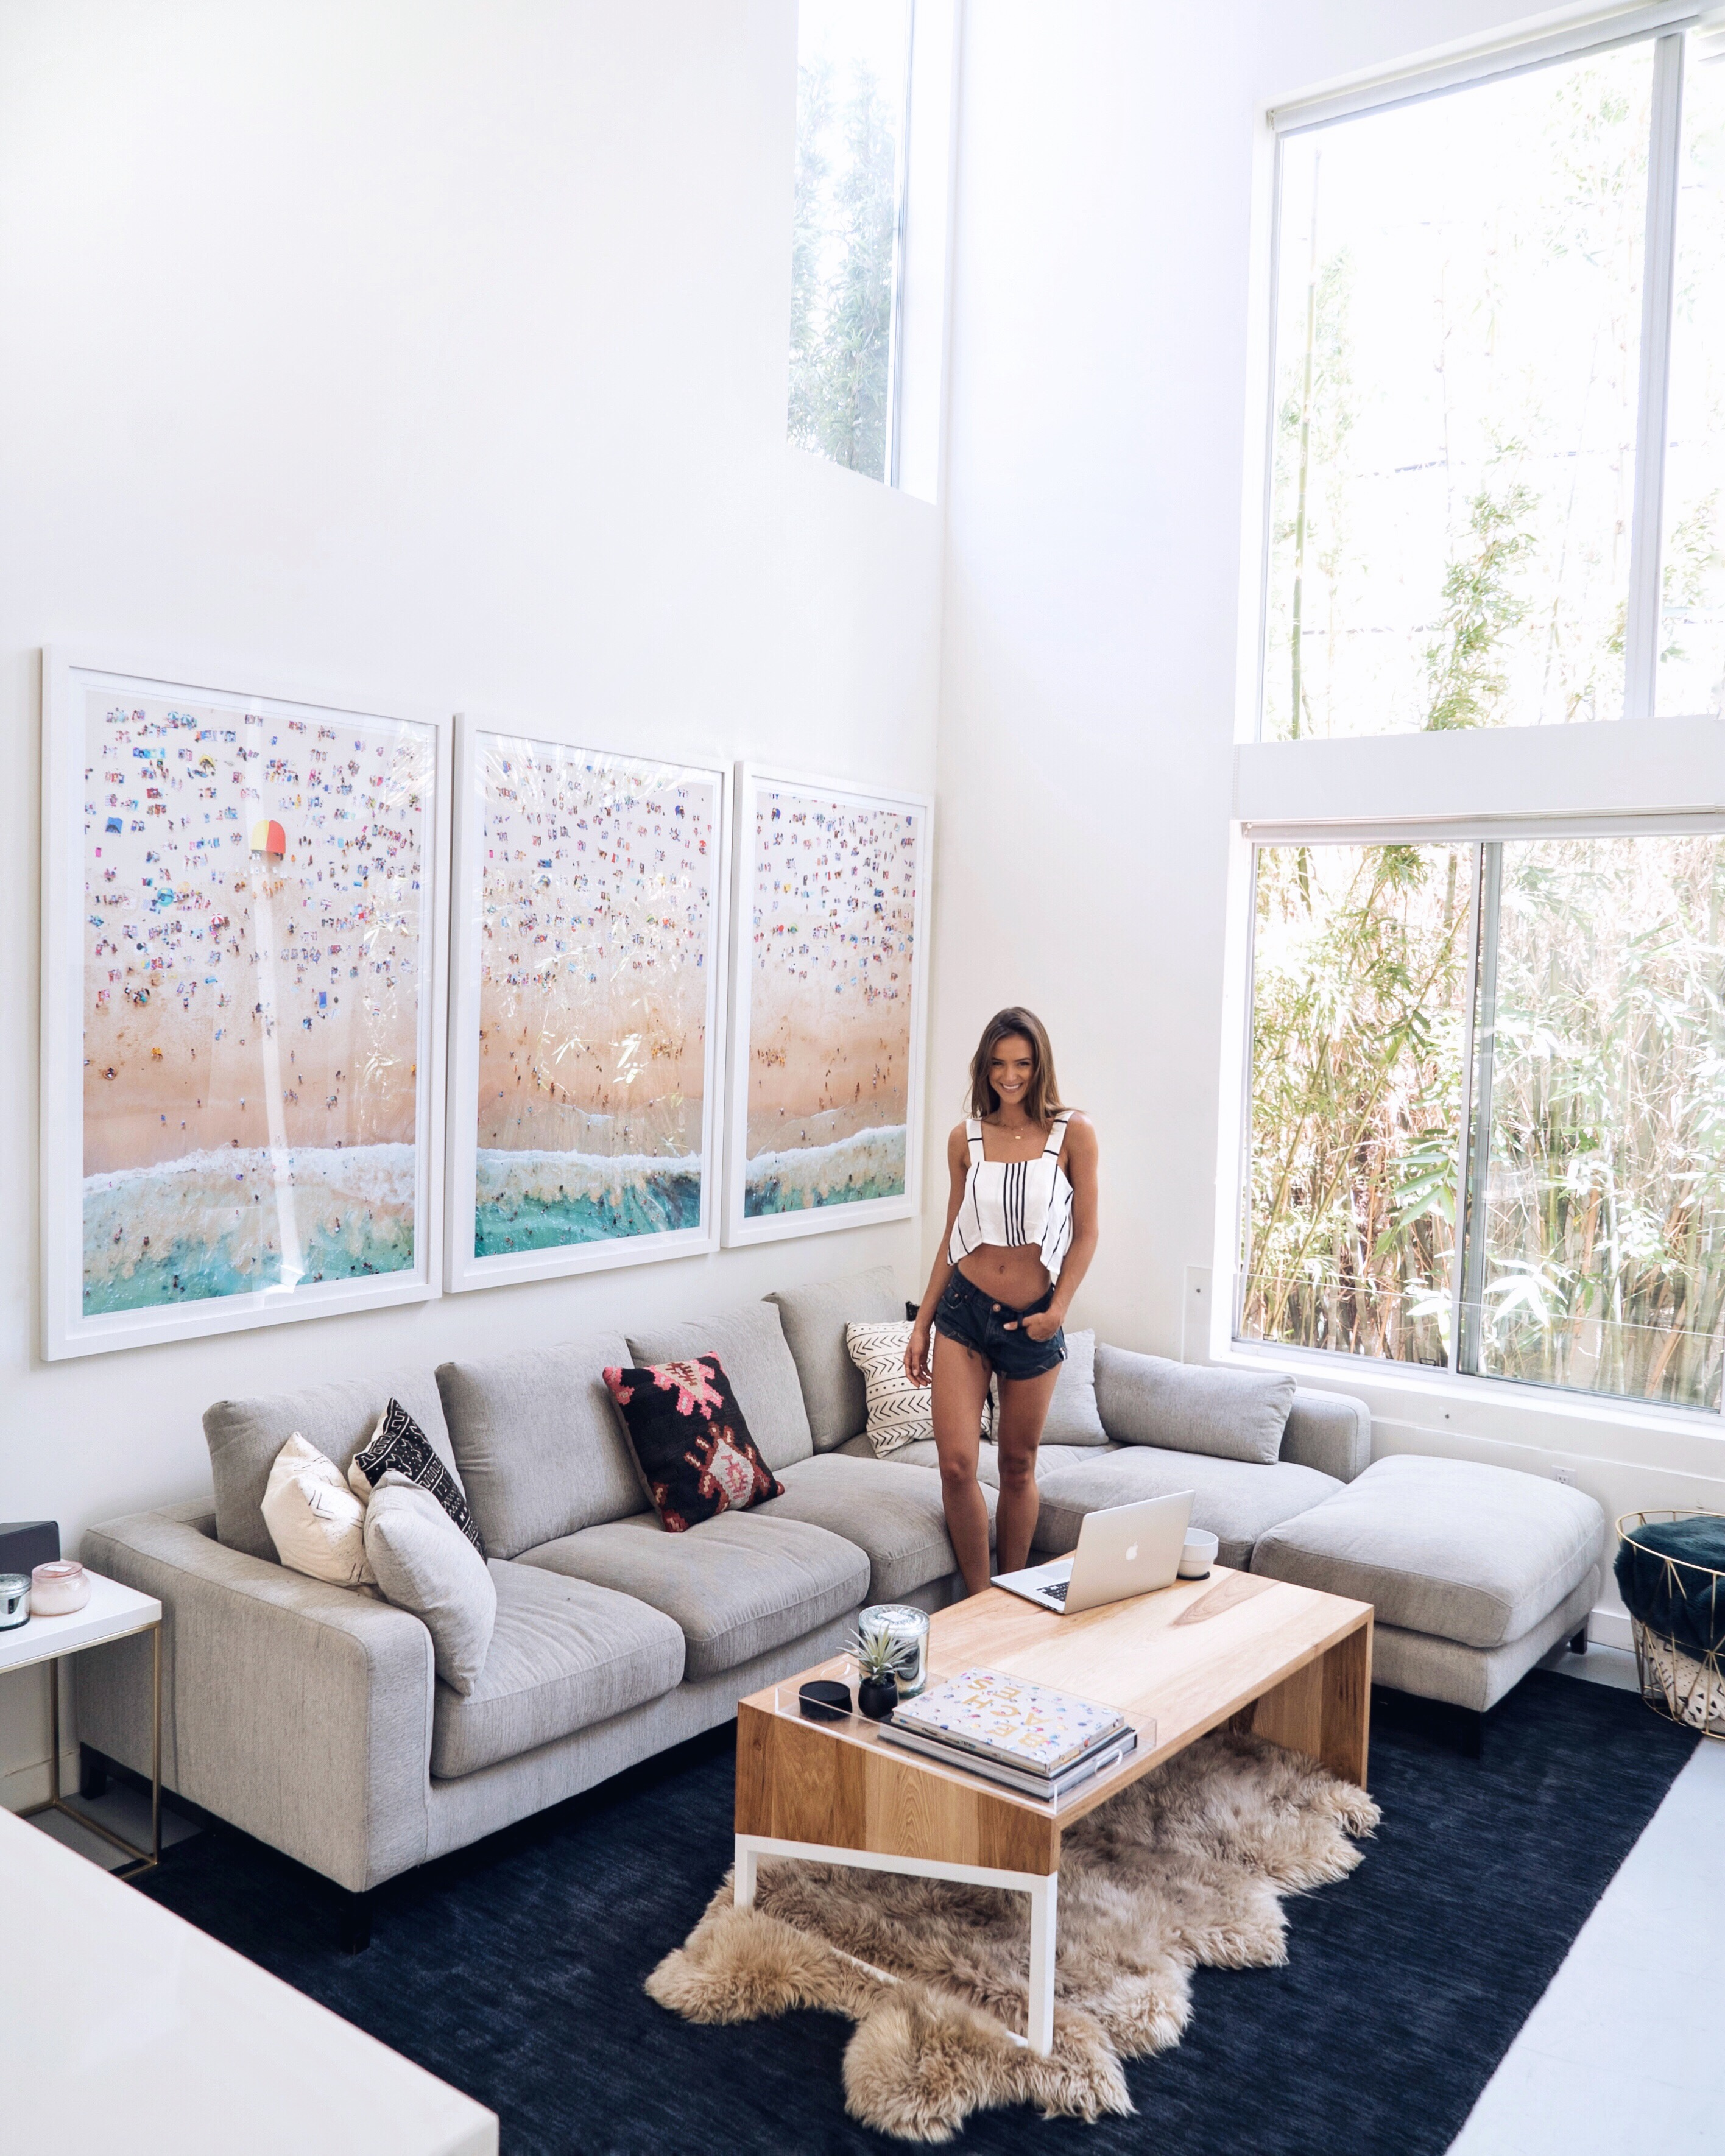 I Finally Have Some Artwork That Fills Up The Massive Wall In Our Living  Room! Iu0027m SO EXCITED To Share How Far Iu0027ve Come With Furnishing And  Decorating Our ...